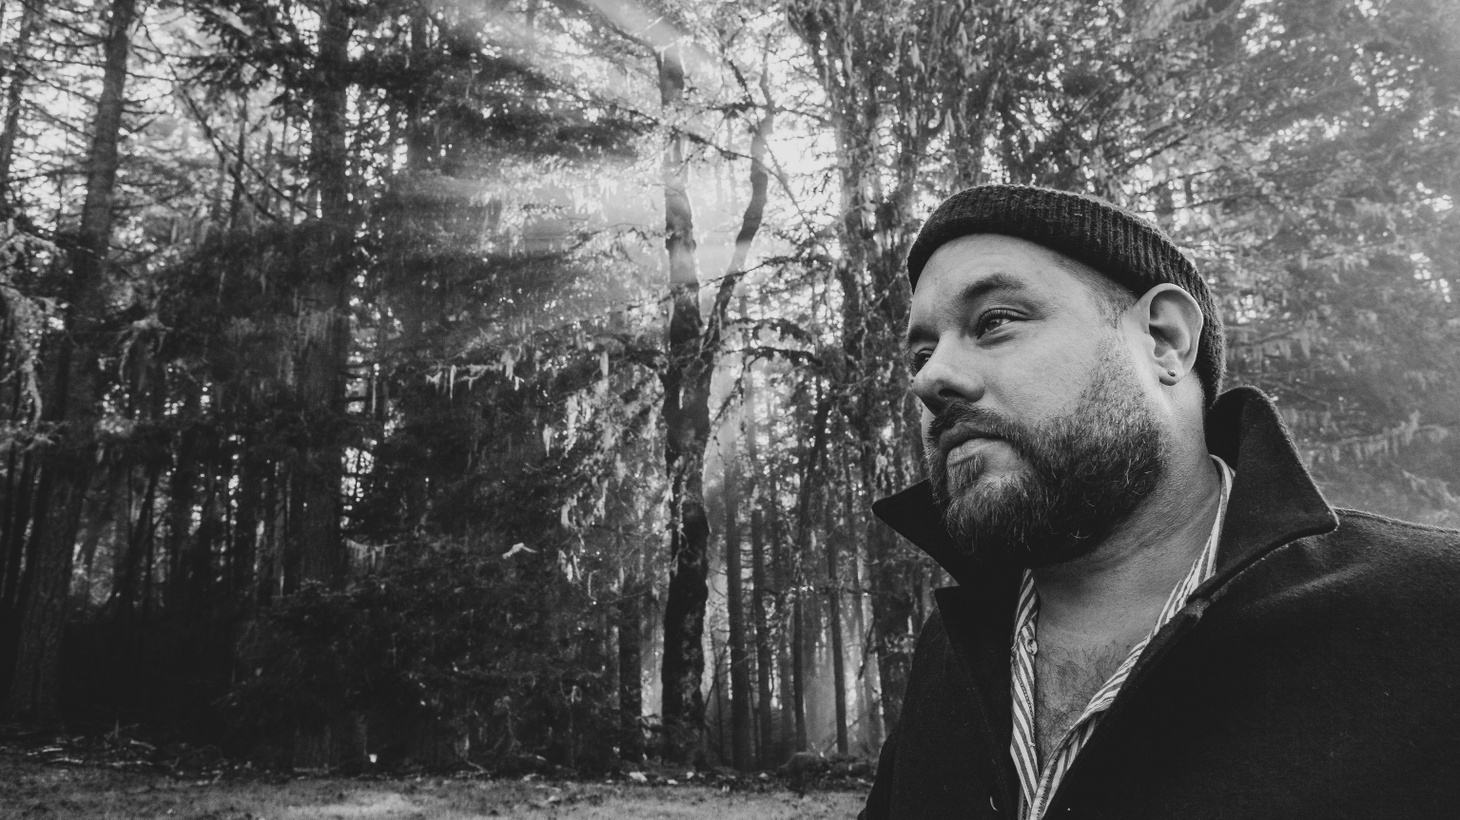 Nathaniel Rateliff's solo album took shape after the passing of his friend and producer Richard Swift.